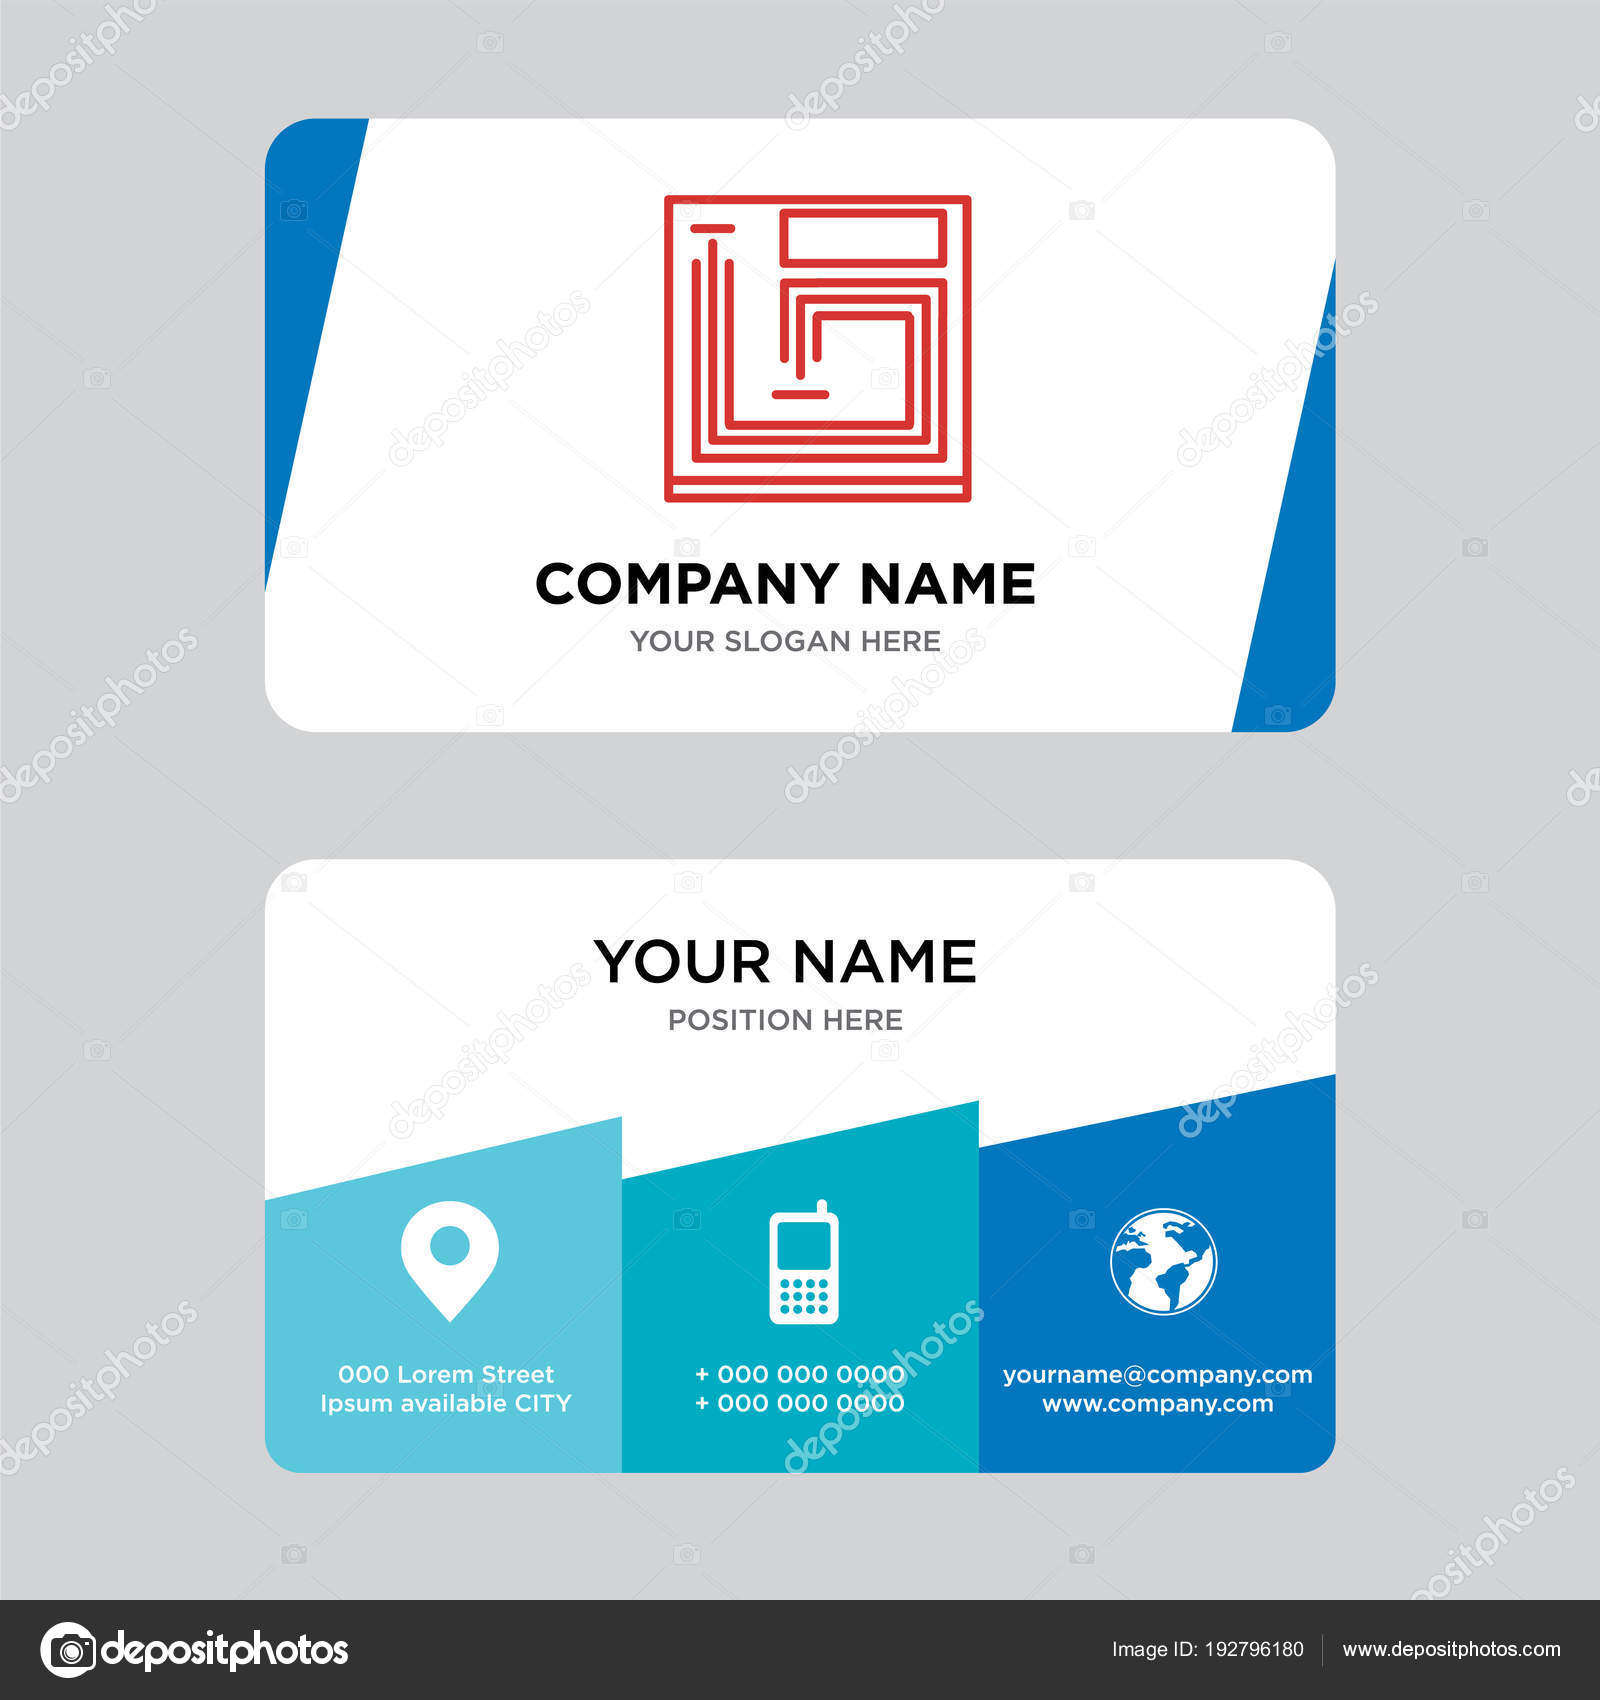 Board Game Business Card Design Template Stock Vector